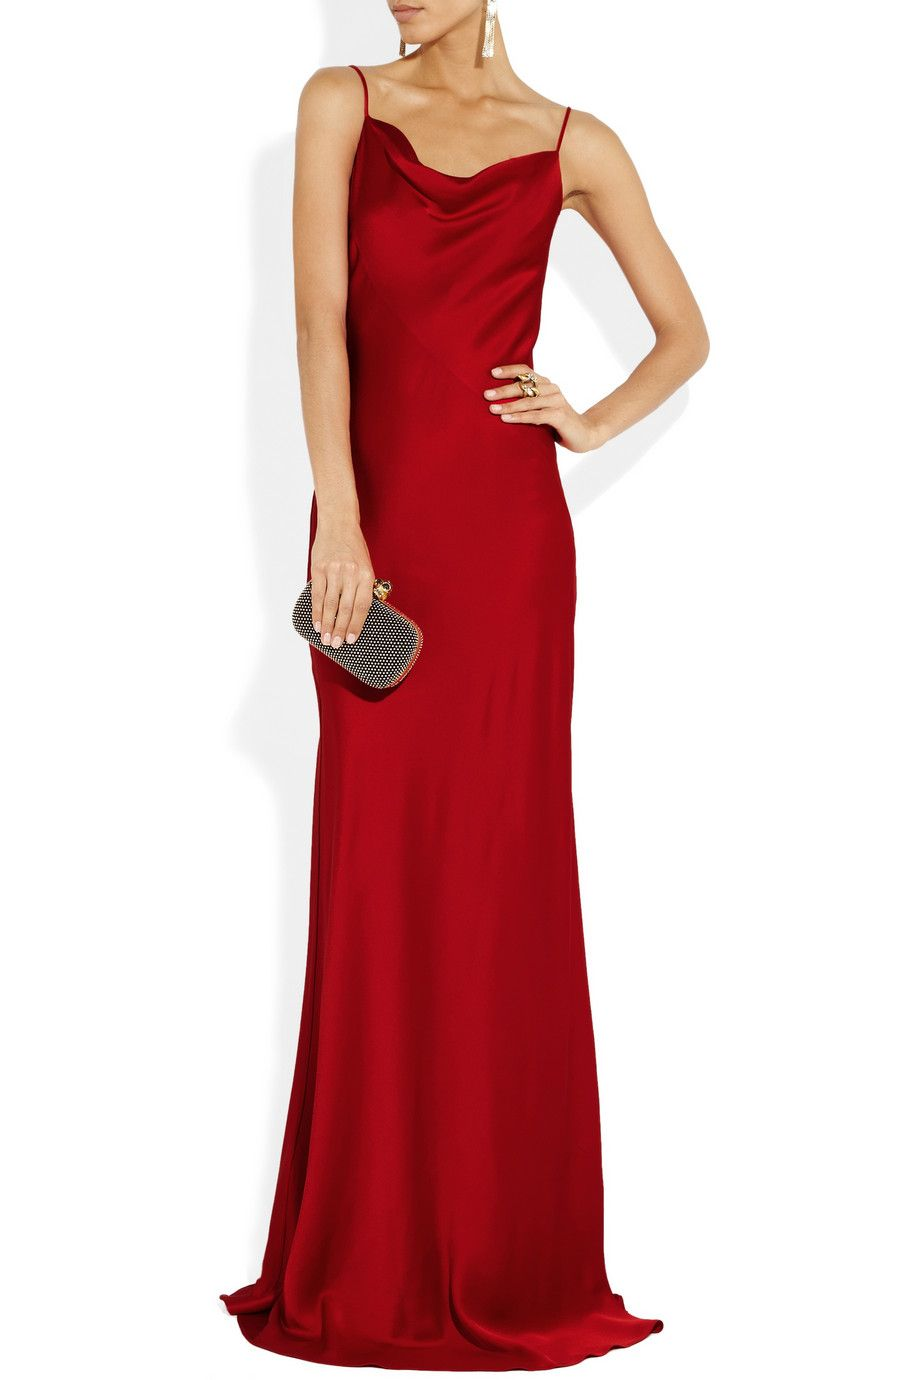 Michael Kors   Sateen-crepe gown   Shown here with: Lanvin earrings ...